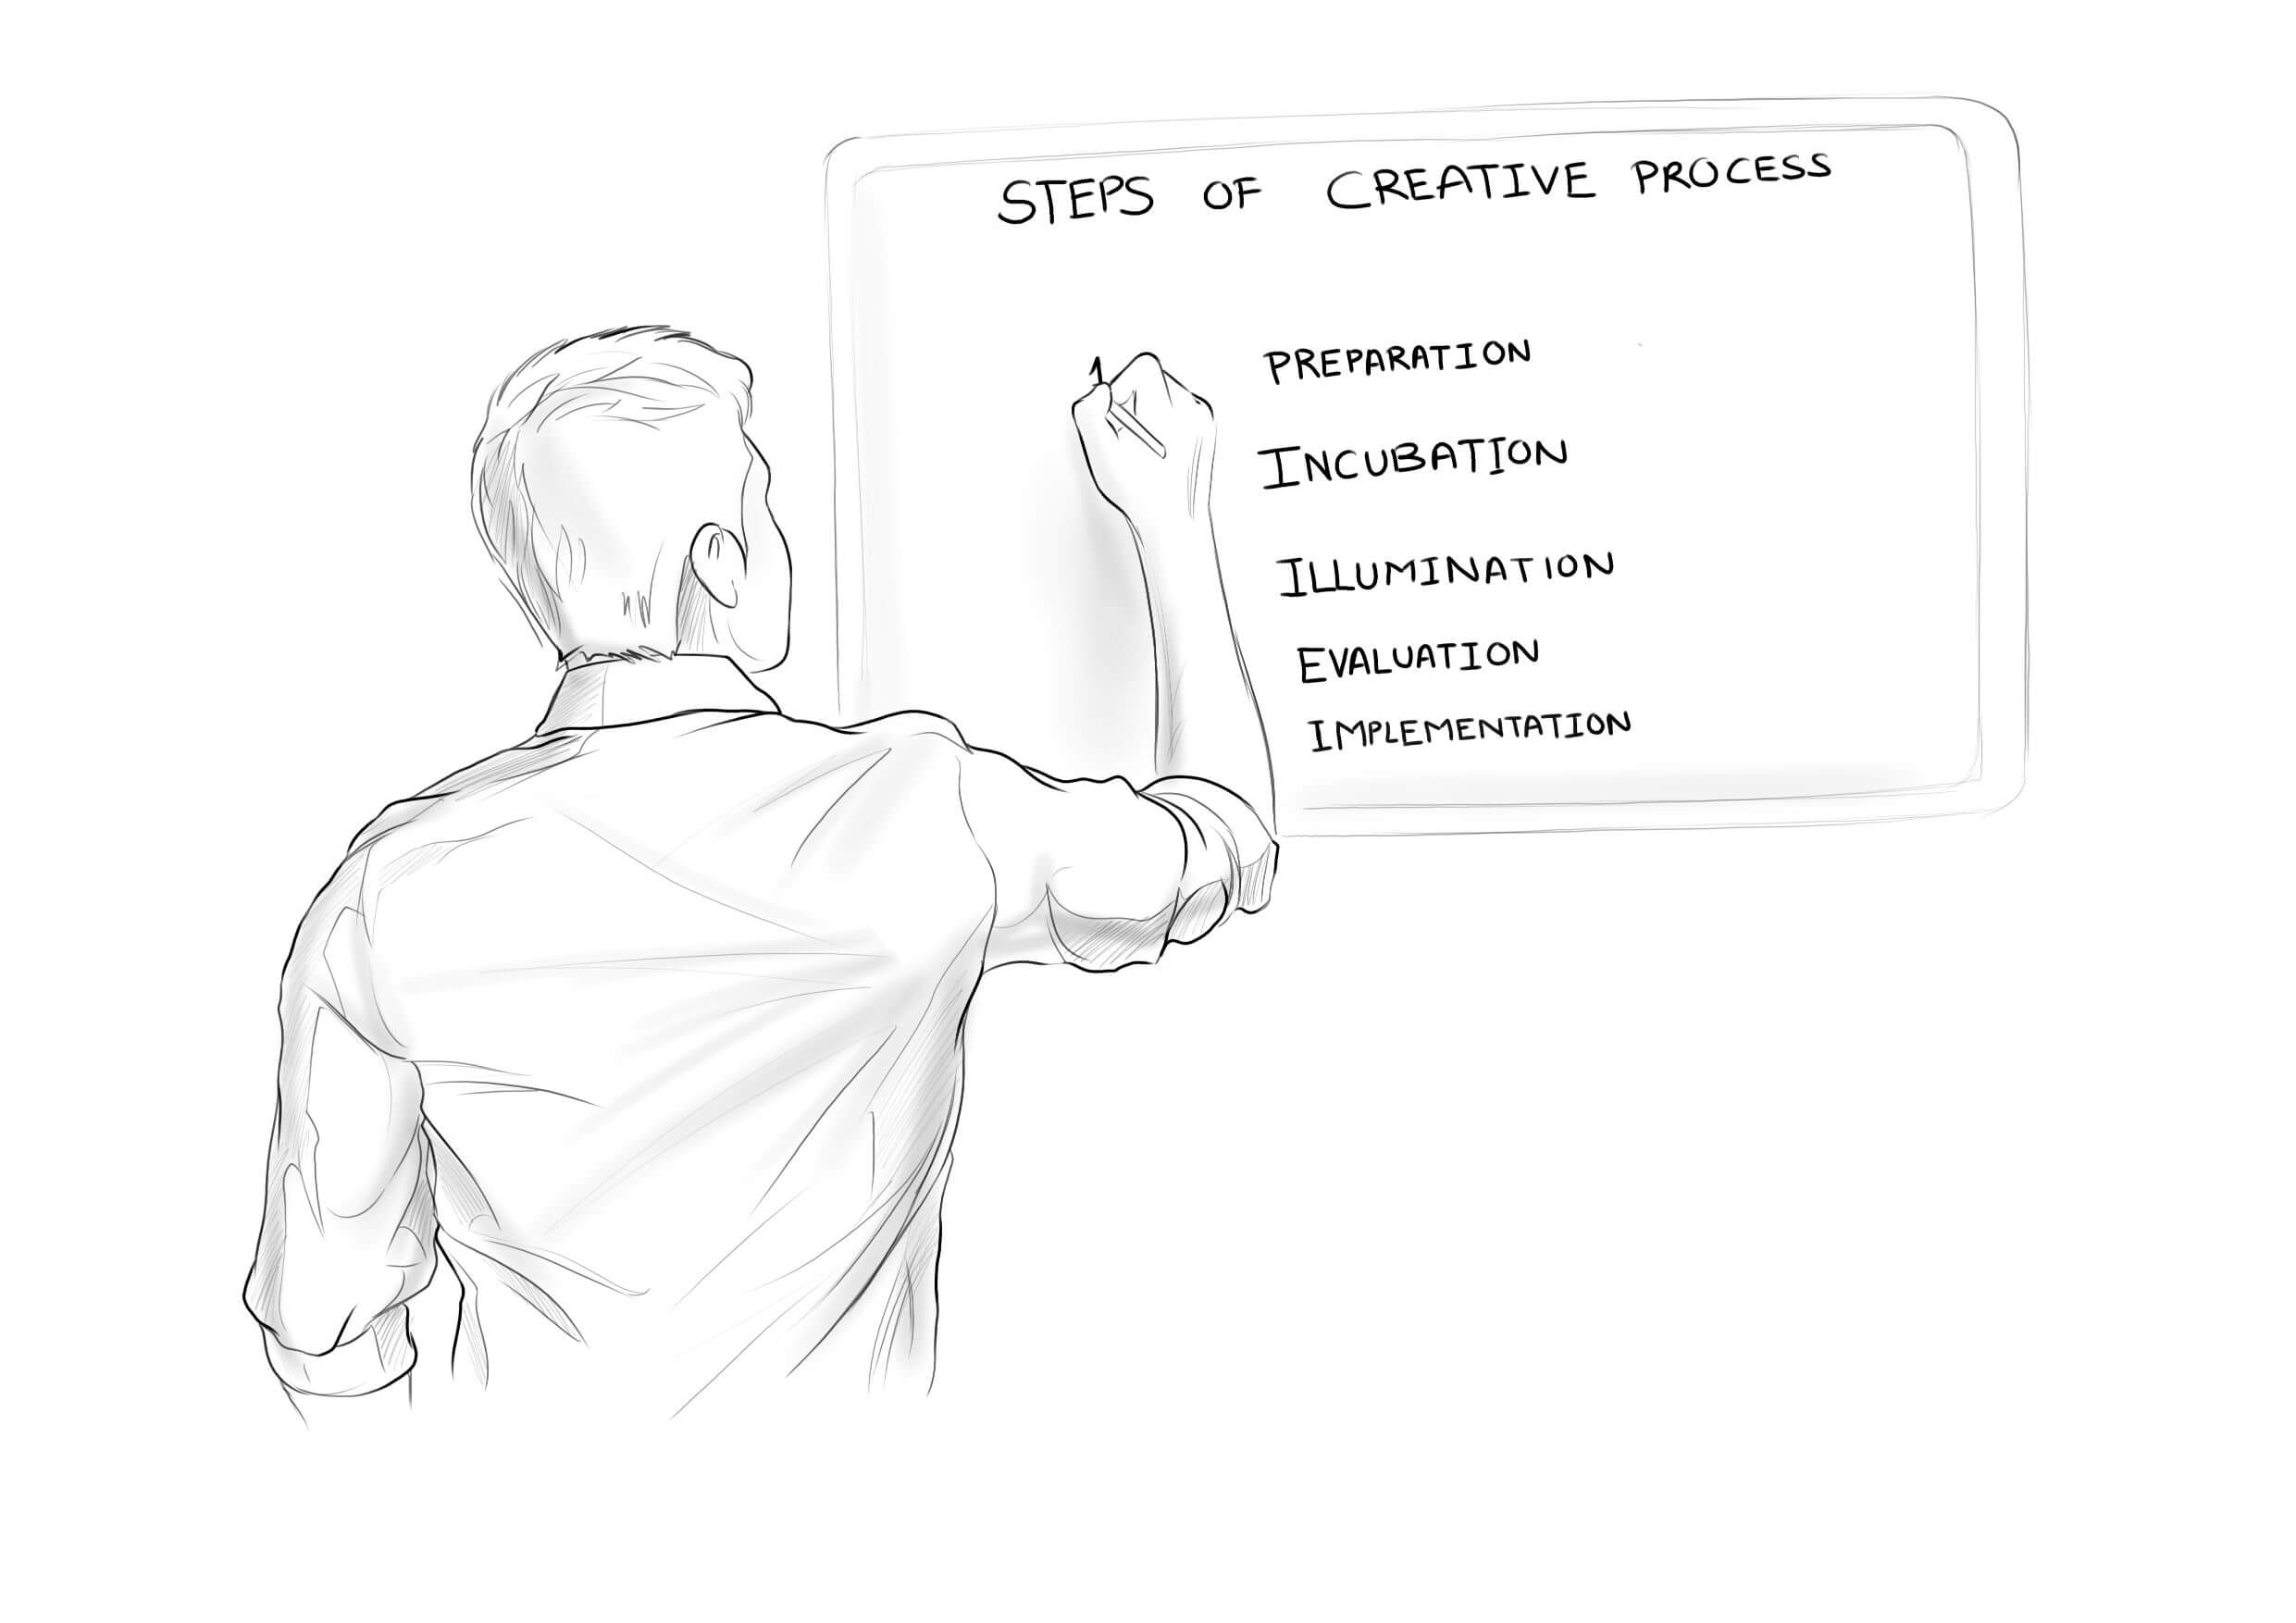 Chapter 2: How to Engage the Creative Process: An Introduction